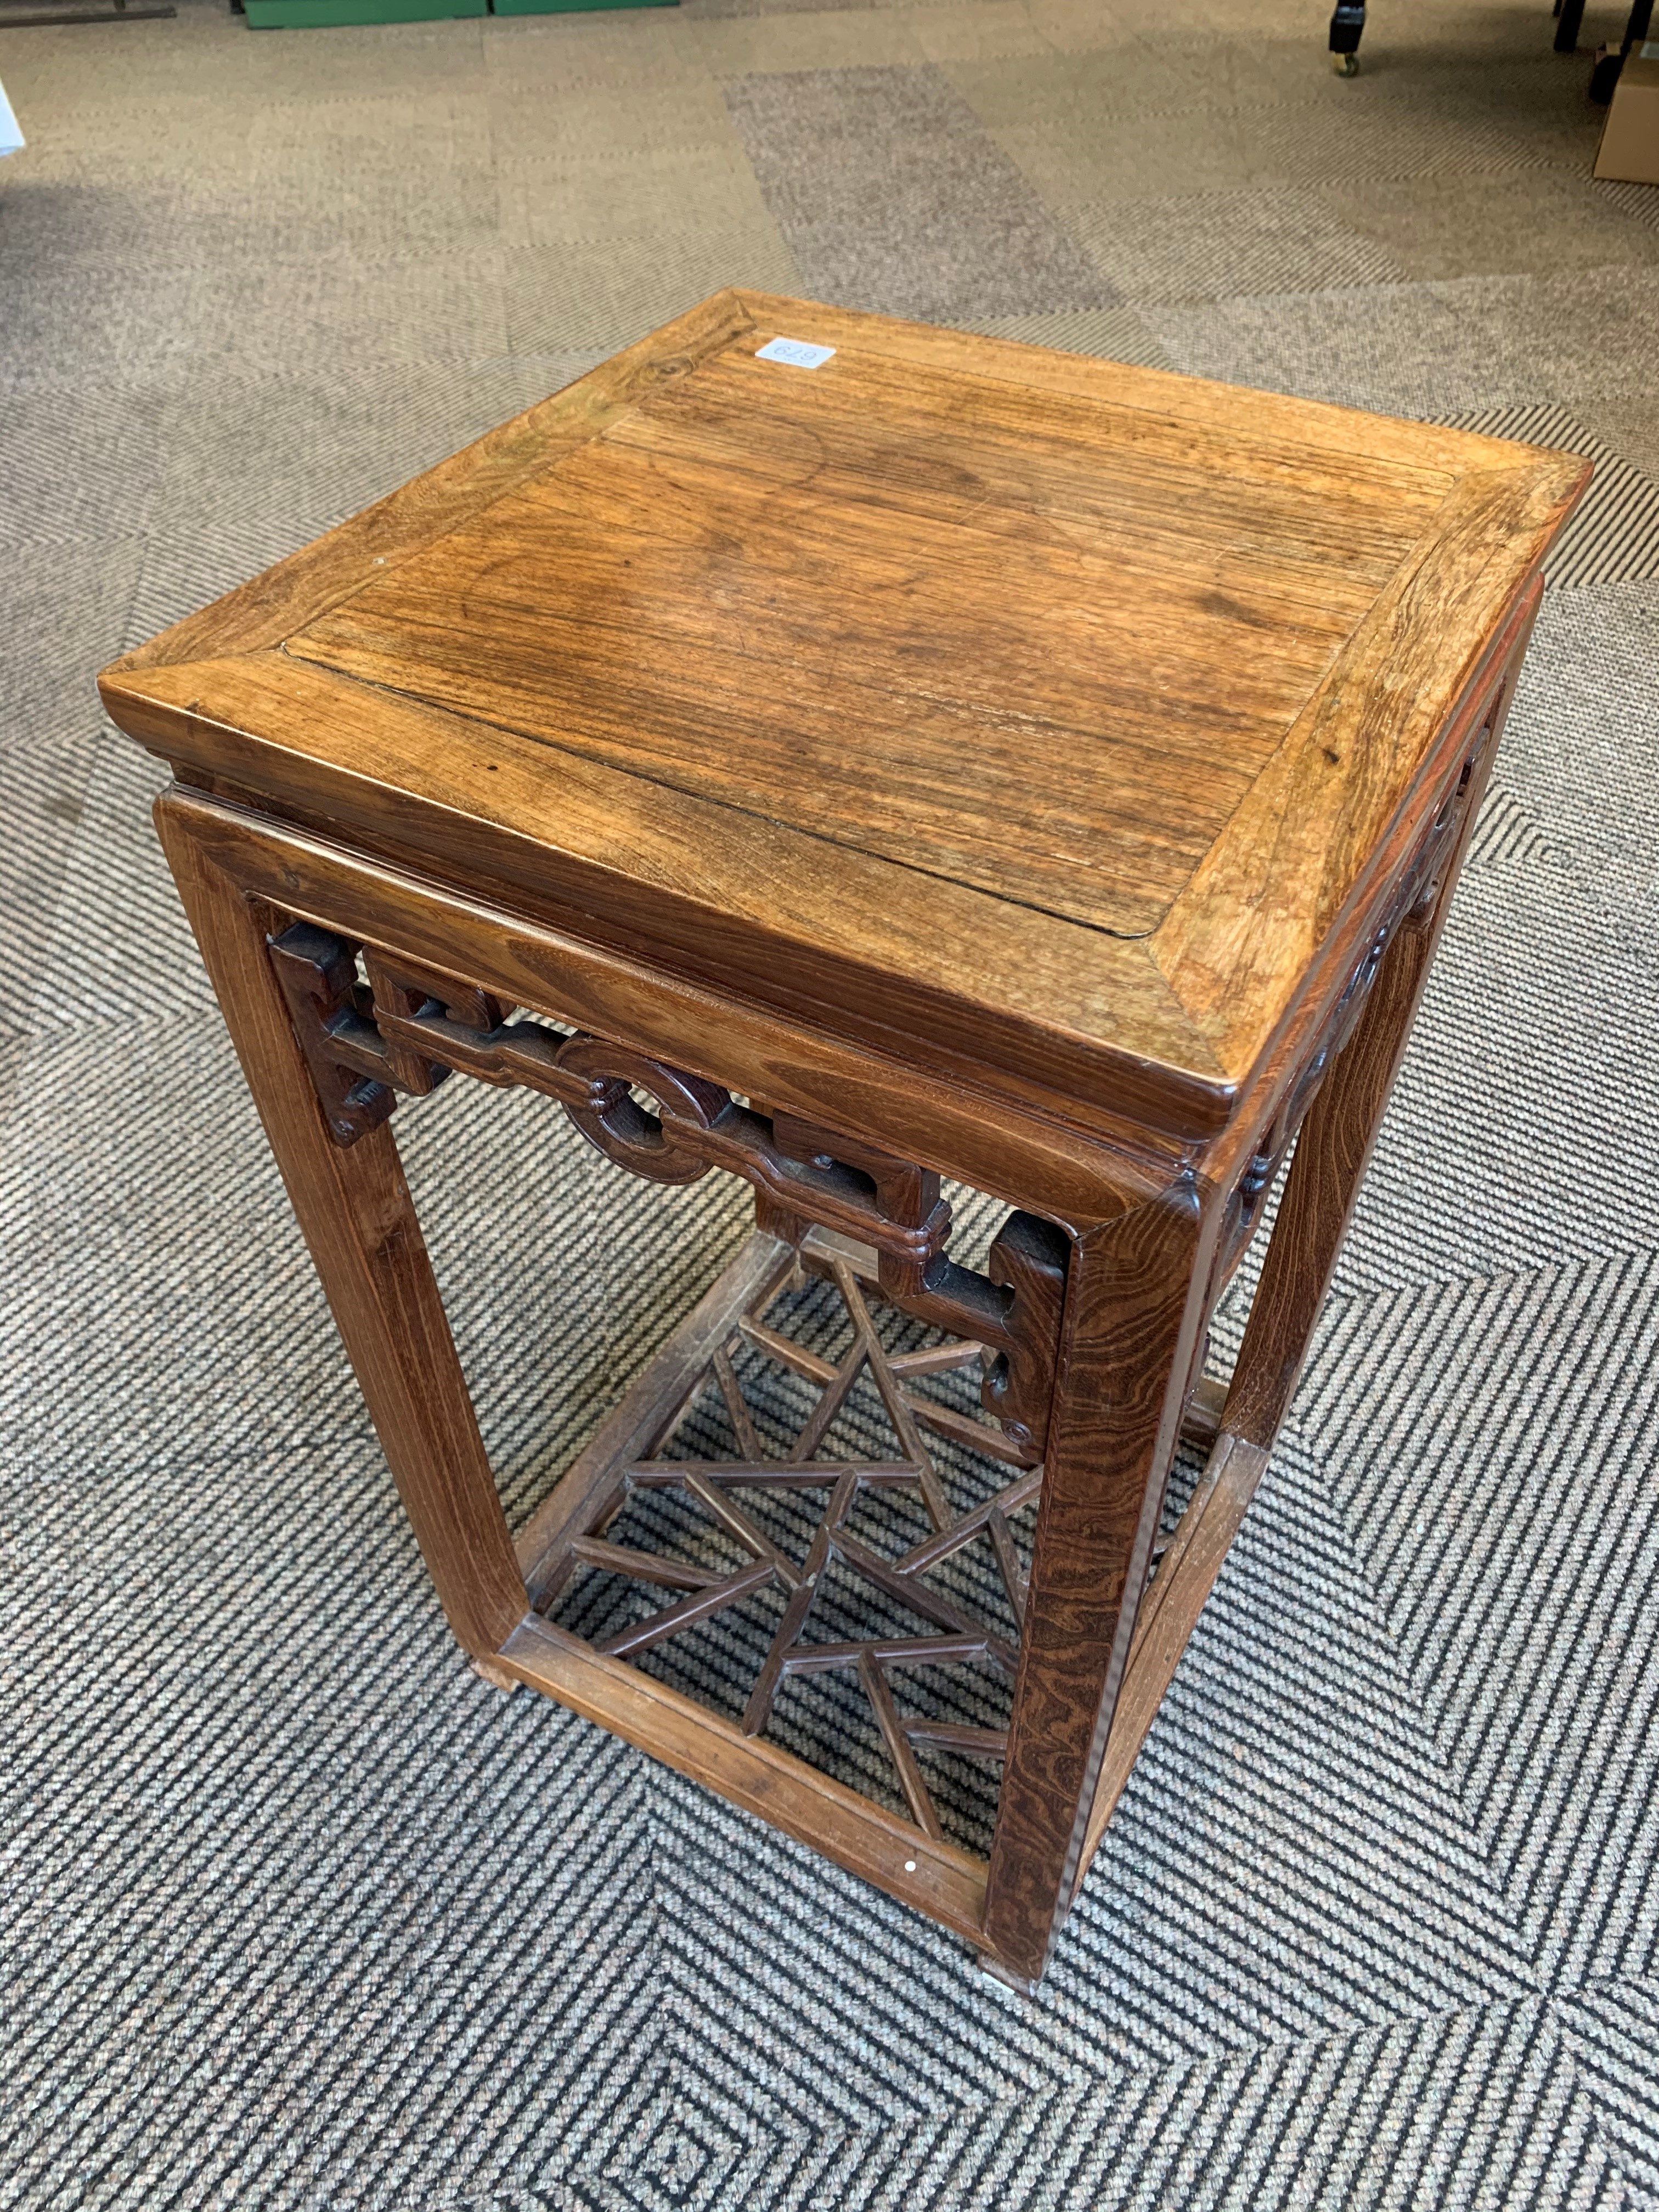 Chinese hardwood jardiniere stand, square topped raised on four legs united by cross stretchers, - Image 3 of 6